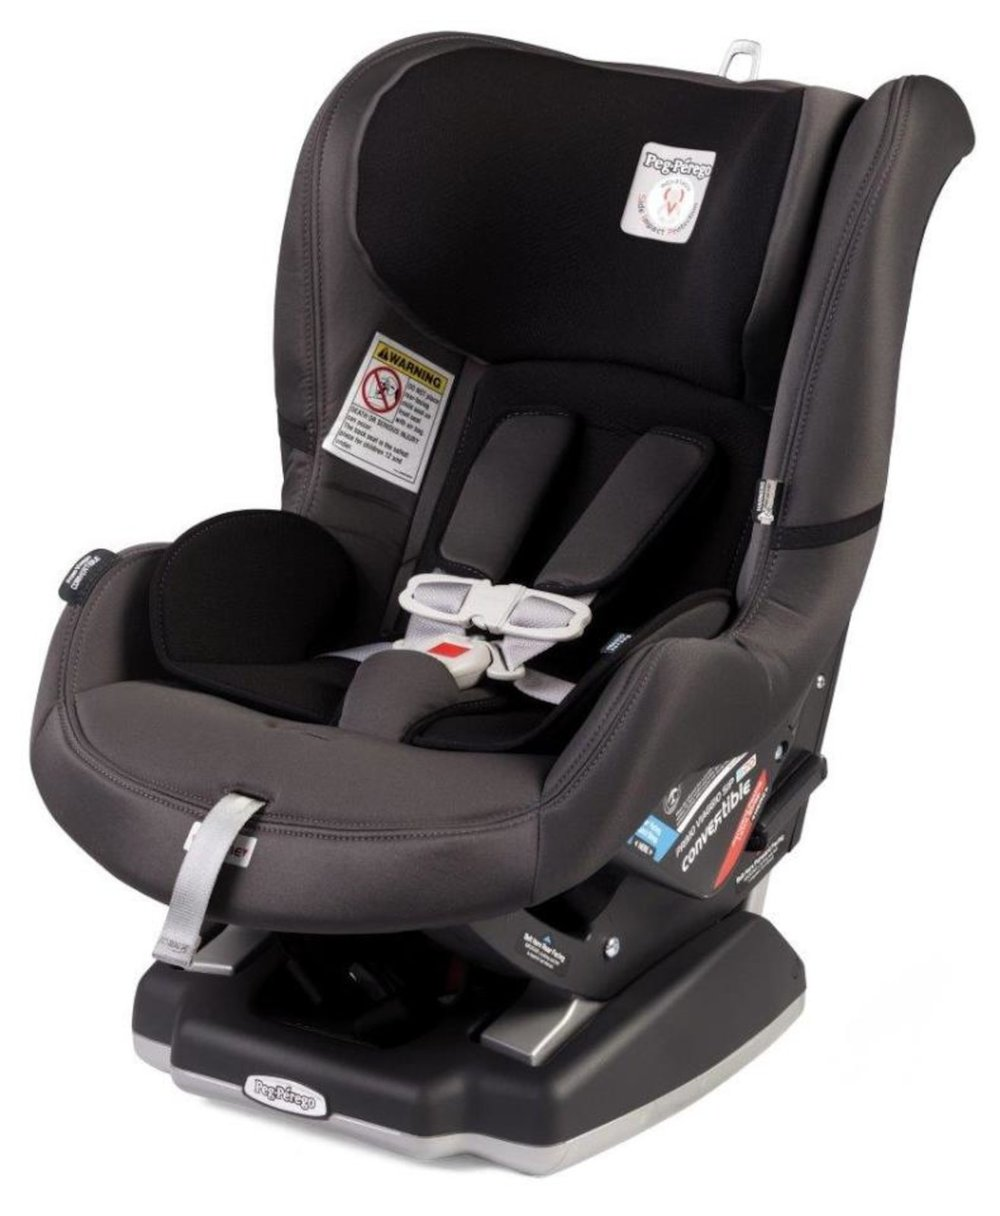 Peg Perego Leather  - themommyjackPeg perego leather. Bc it's stylish and looks like a part of the car. Easy to wipe.anamarie_mPeg Perego!! Amazing safety ratings and made in Italy ❤️, All 3 of our kids use from infant to convertible 😊